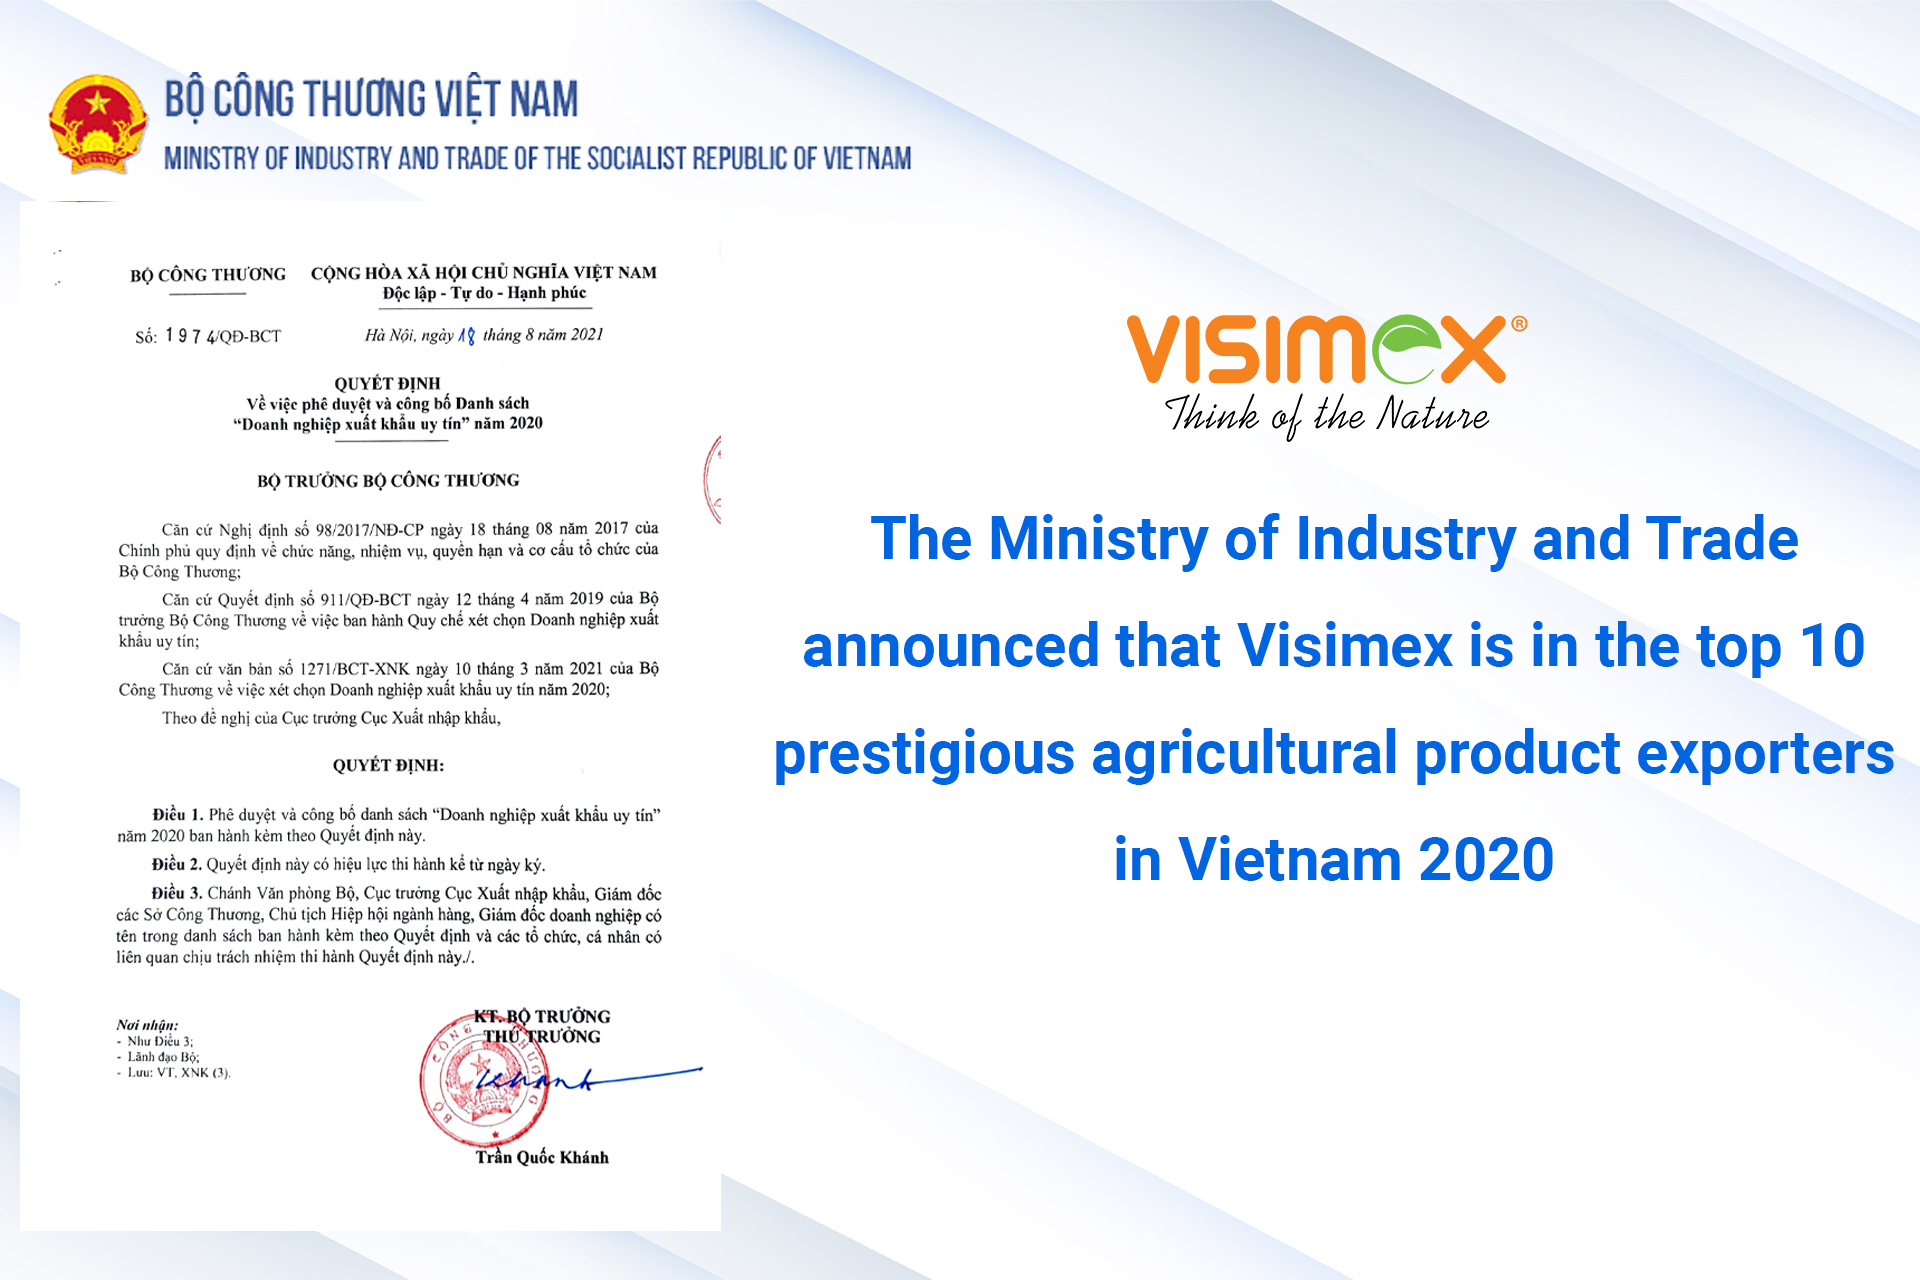 The Ministry of Industry and Trade announced that Visimex is in the top 10 prestigious agricultural product exporters in Vietnam 2020